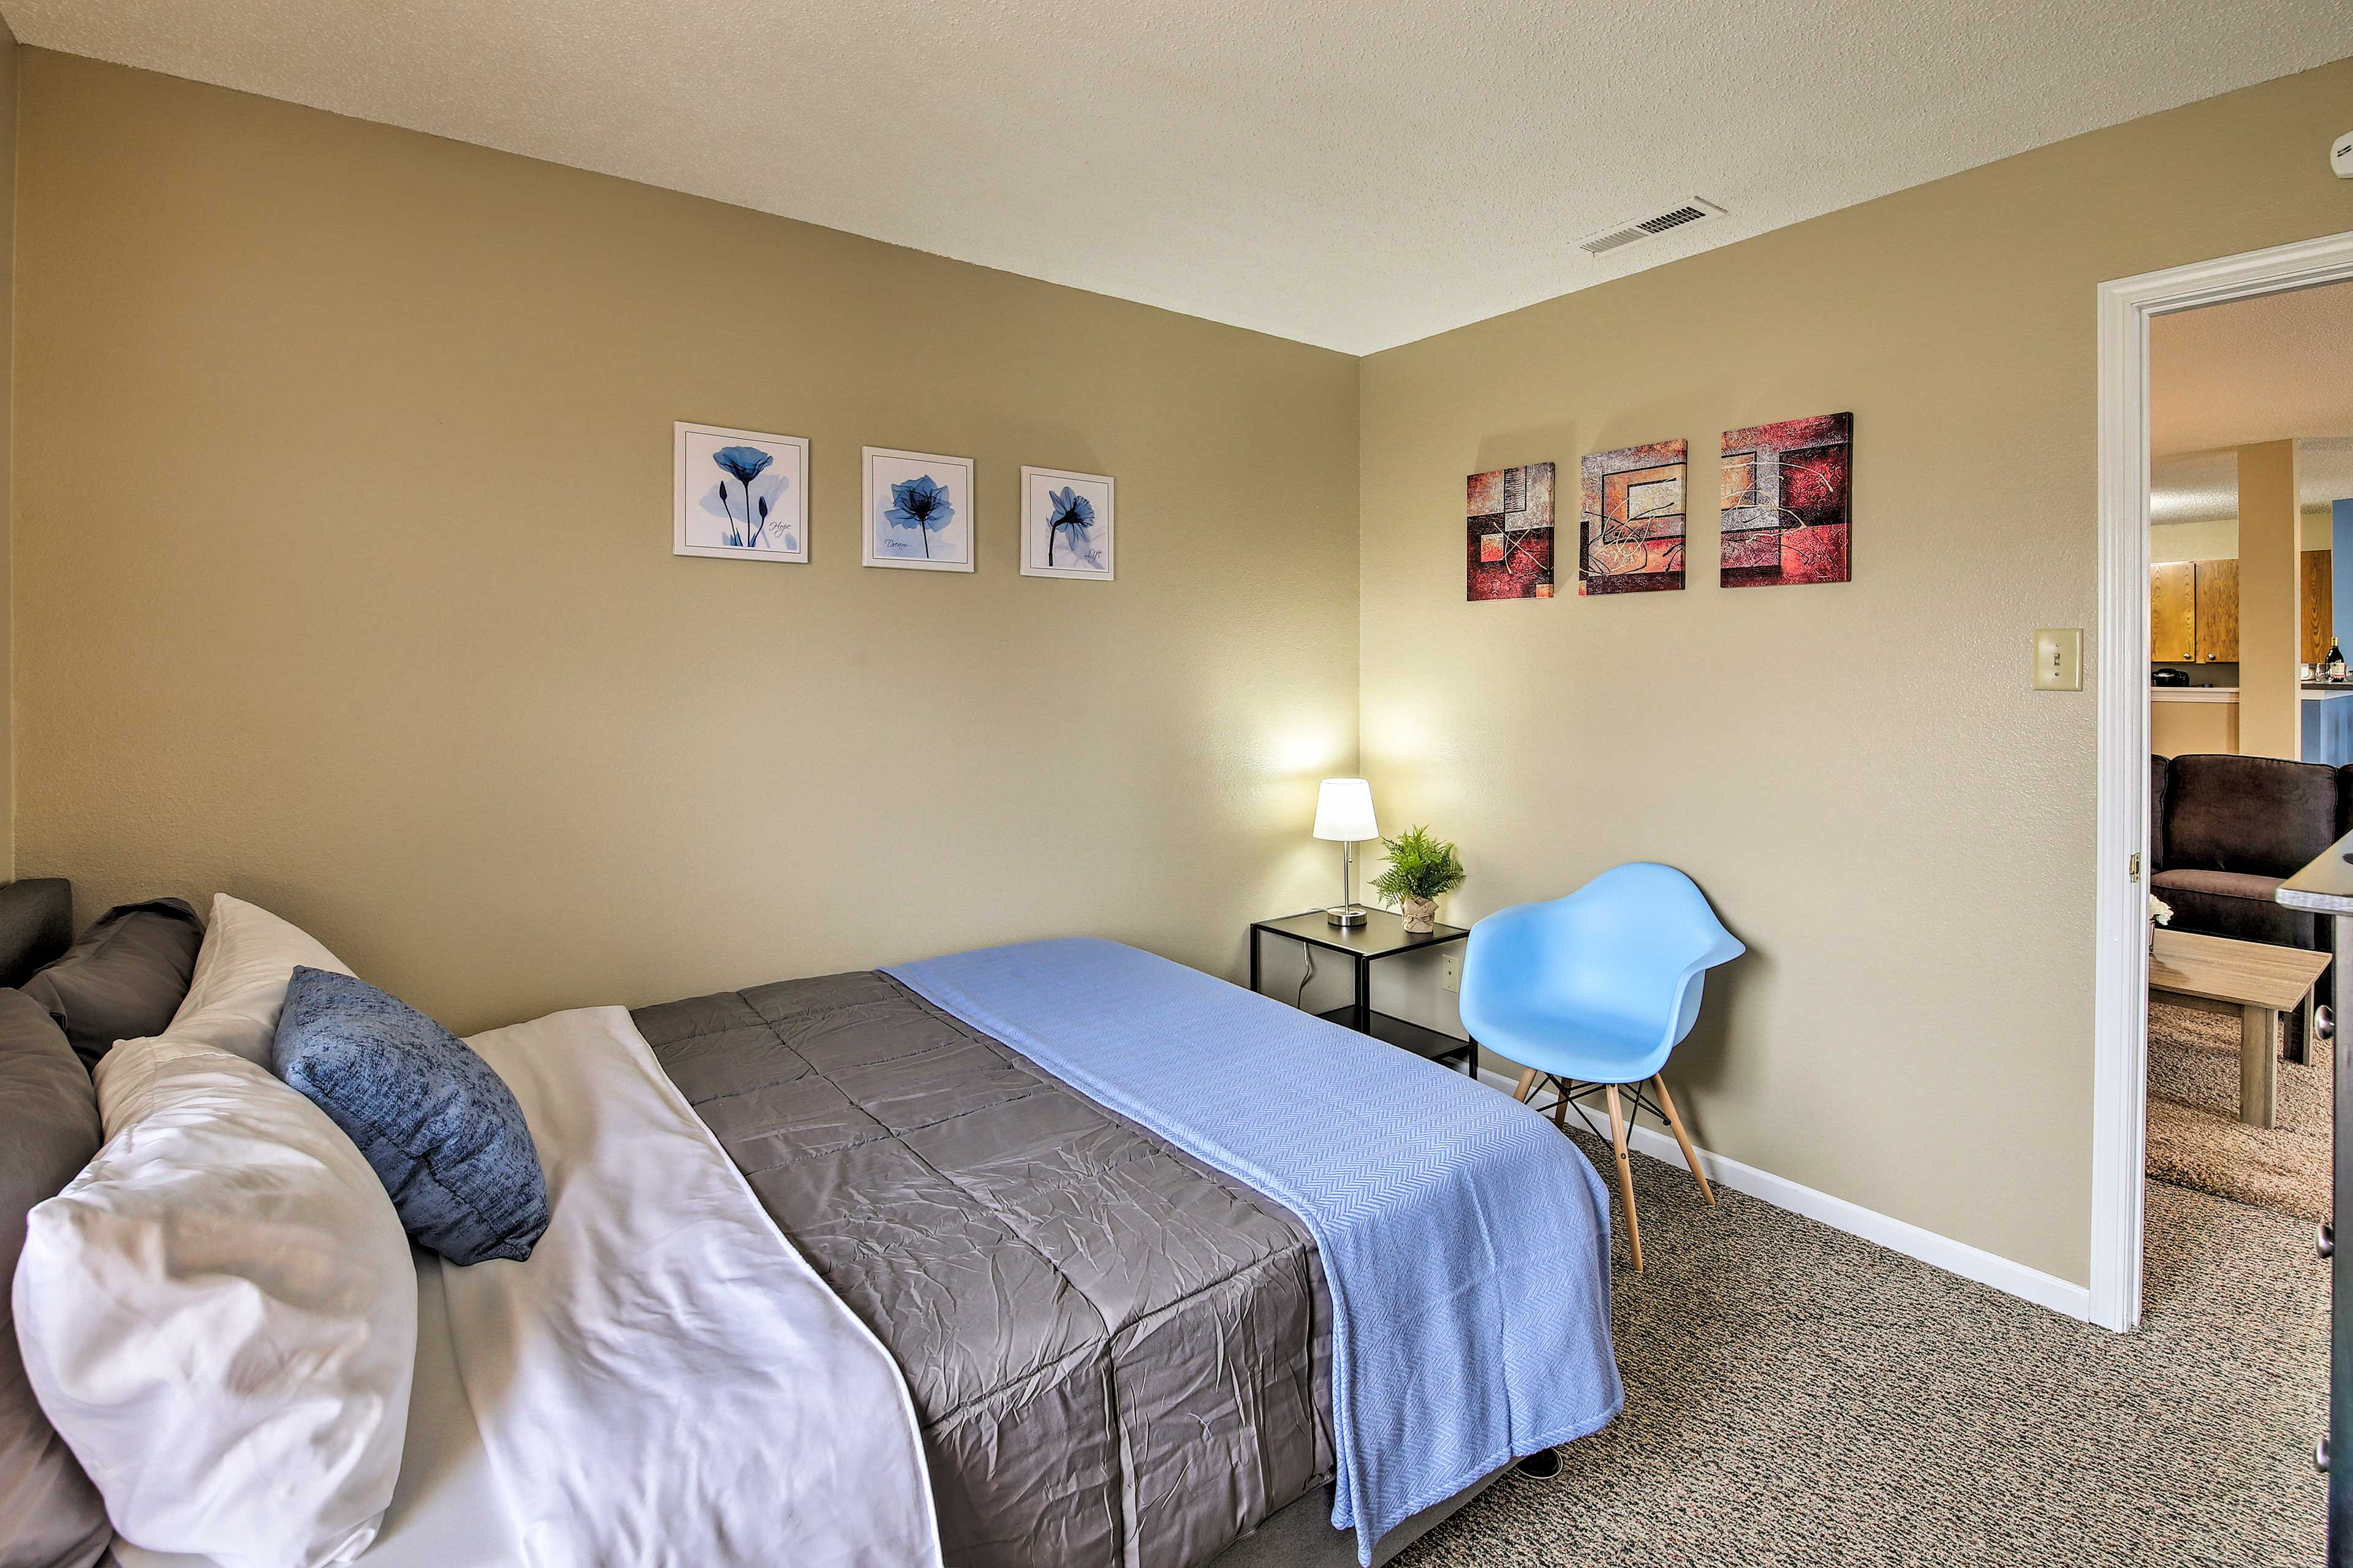 Two guests can comfortably stay in this room.